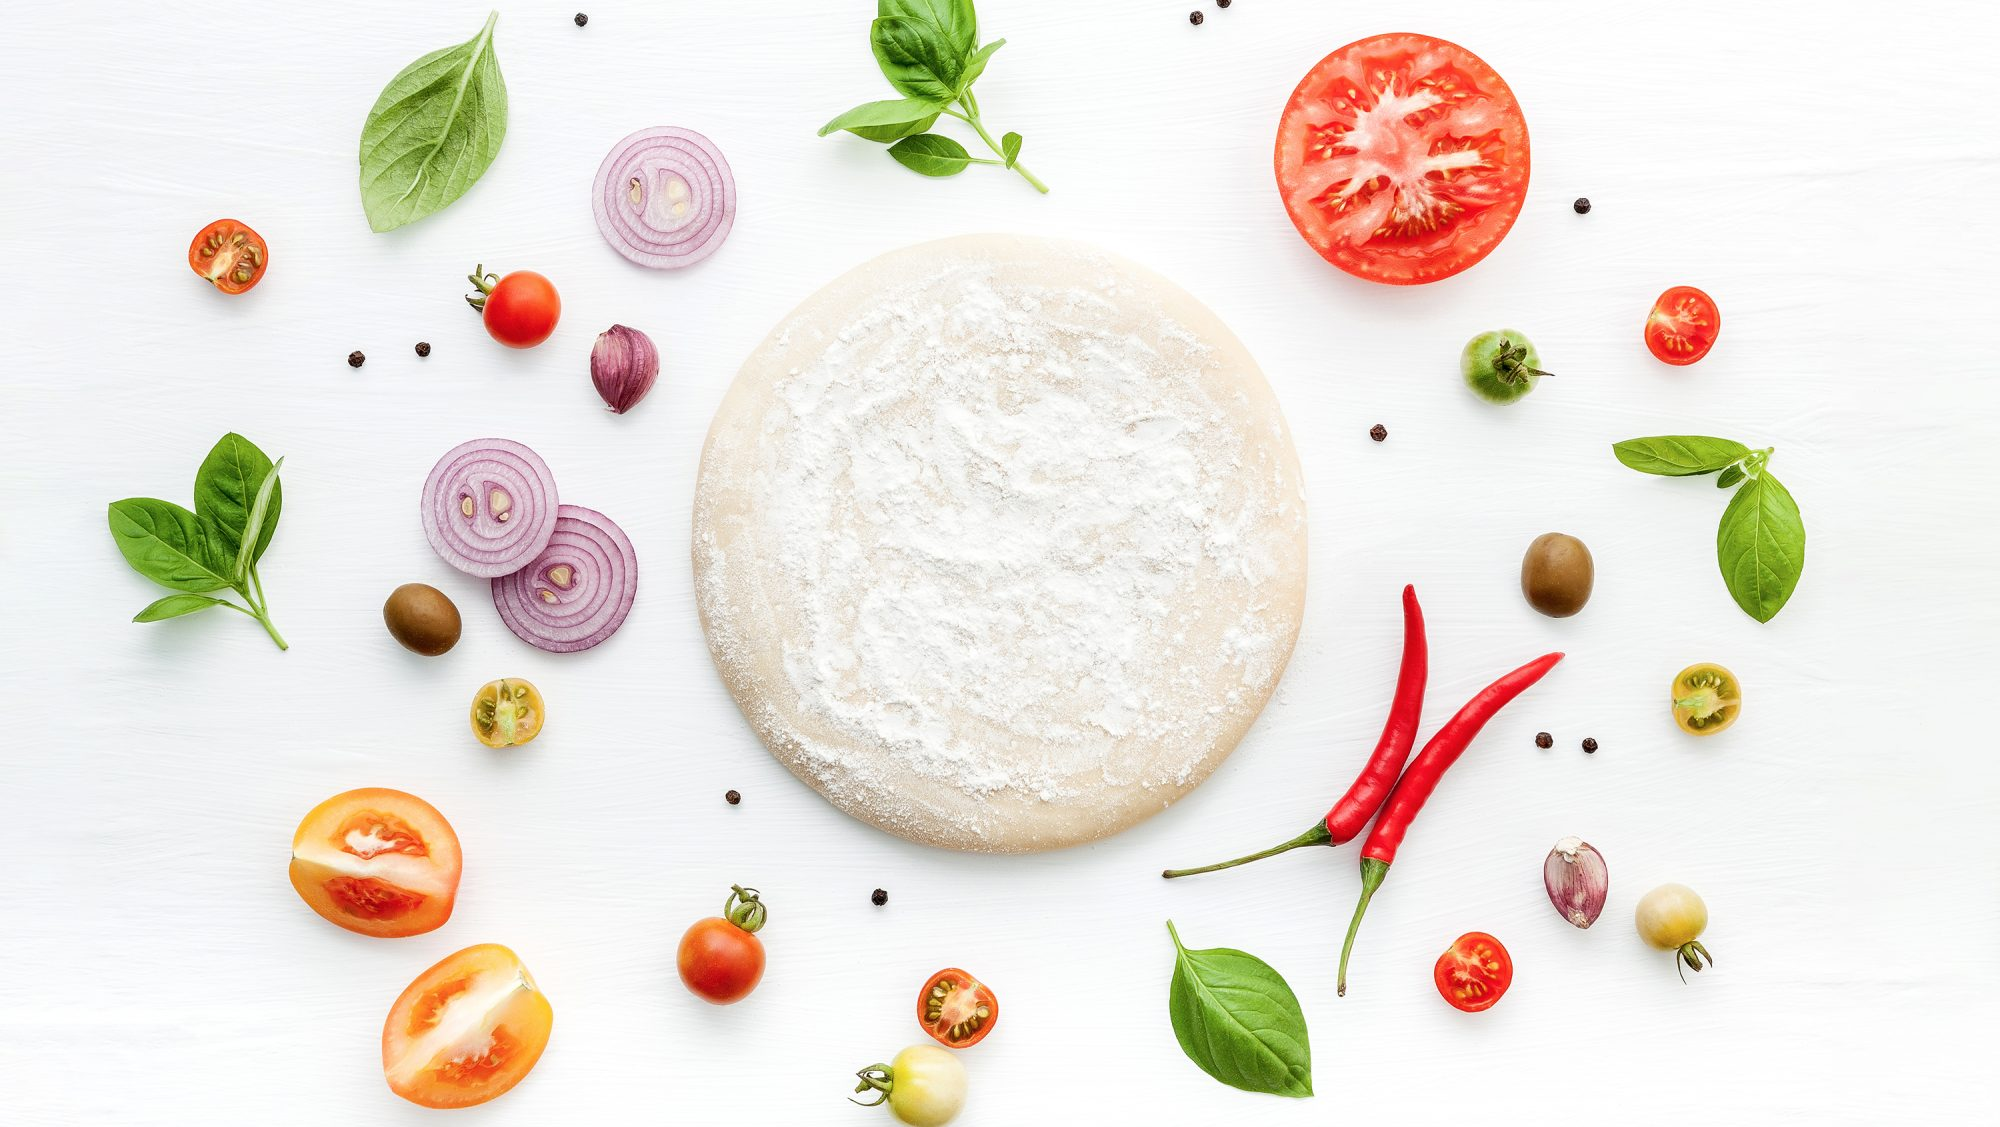 instant pot pizza dough, surrounded by vegetables